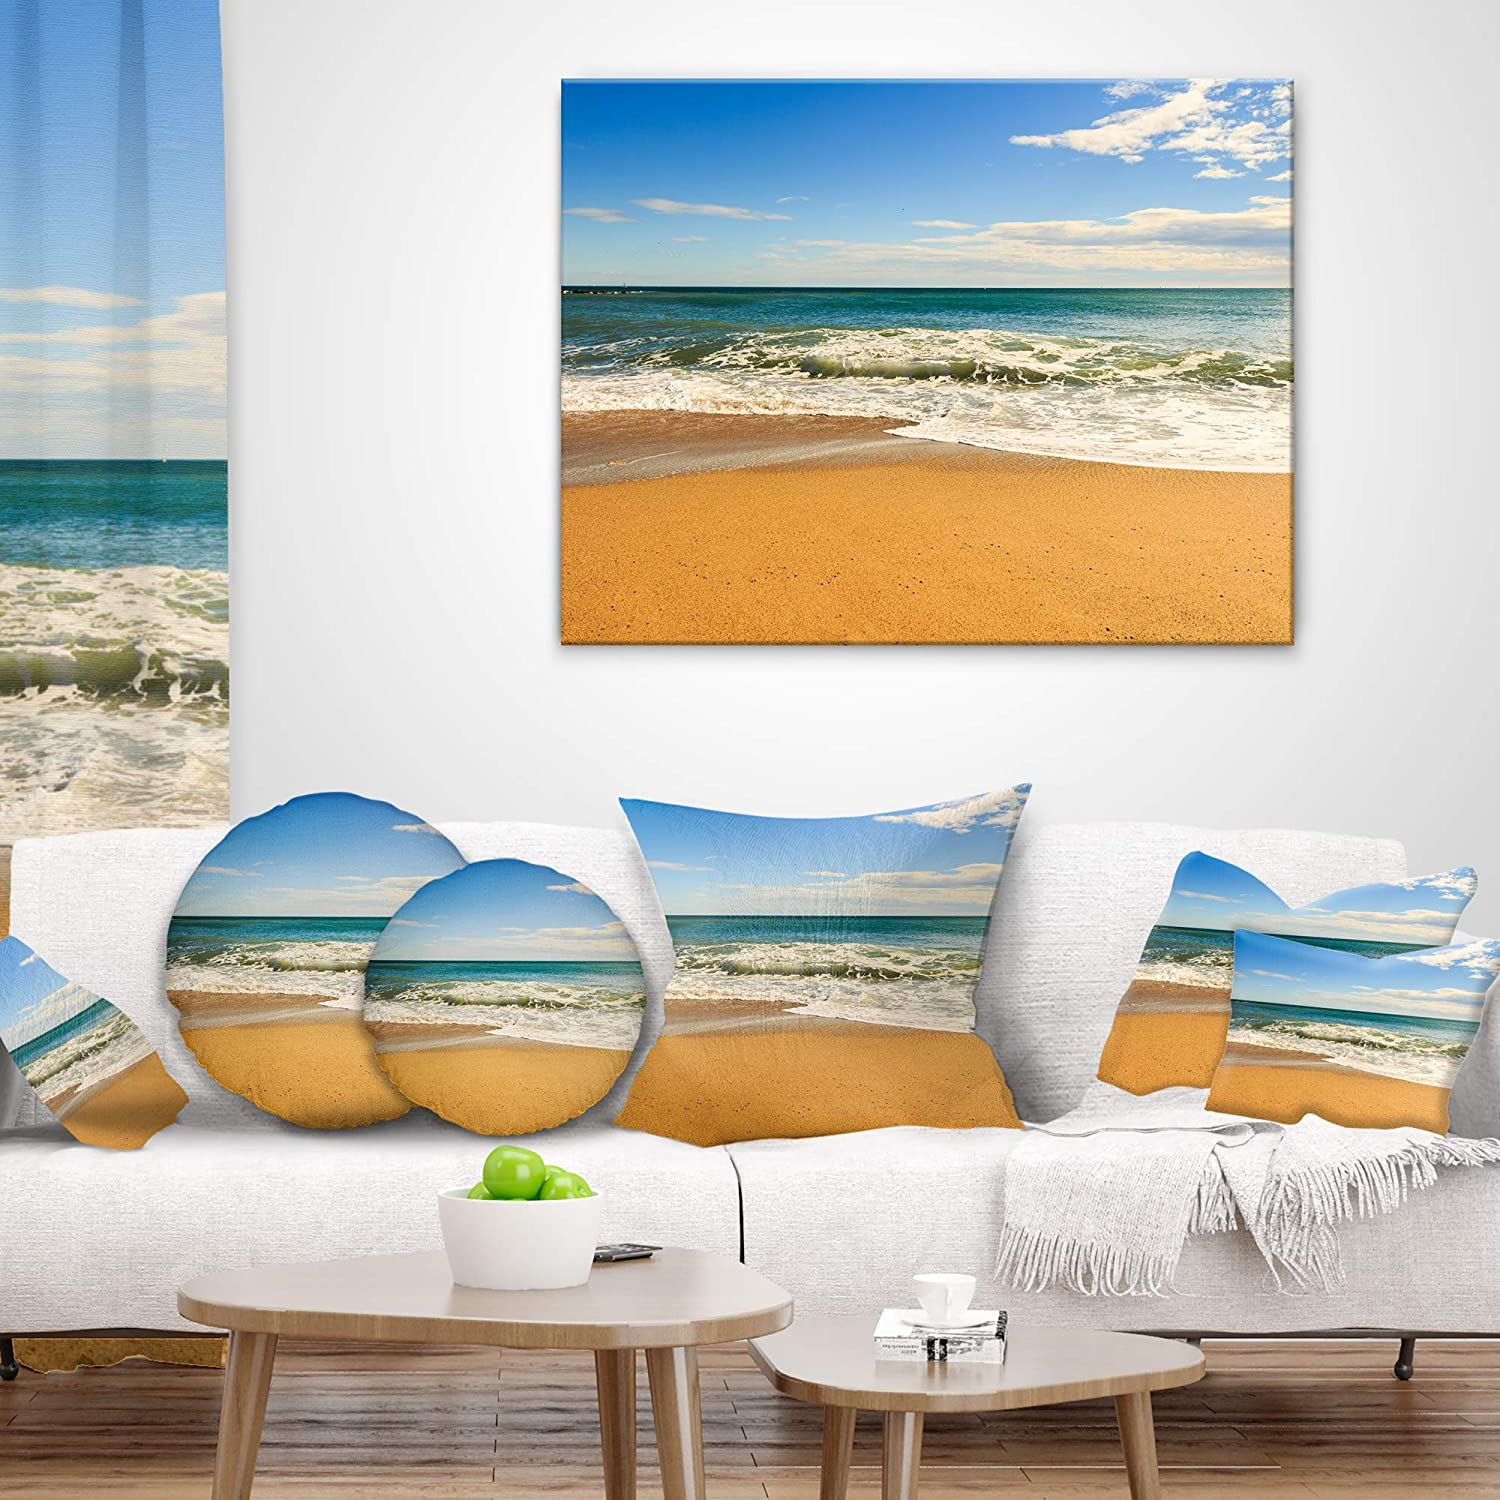 Designart CU8774-16-16-C Daylight Relaxation Landscape Photography Round Cushion Cover for Living Room Sofa Throw Pillow 16